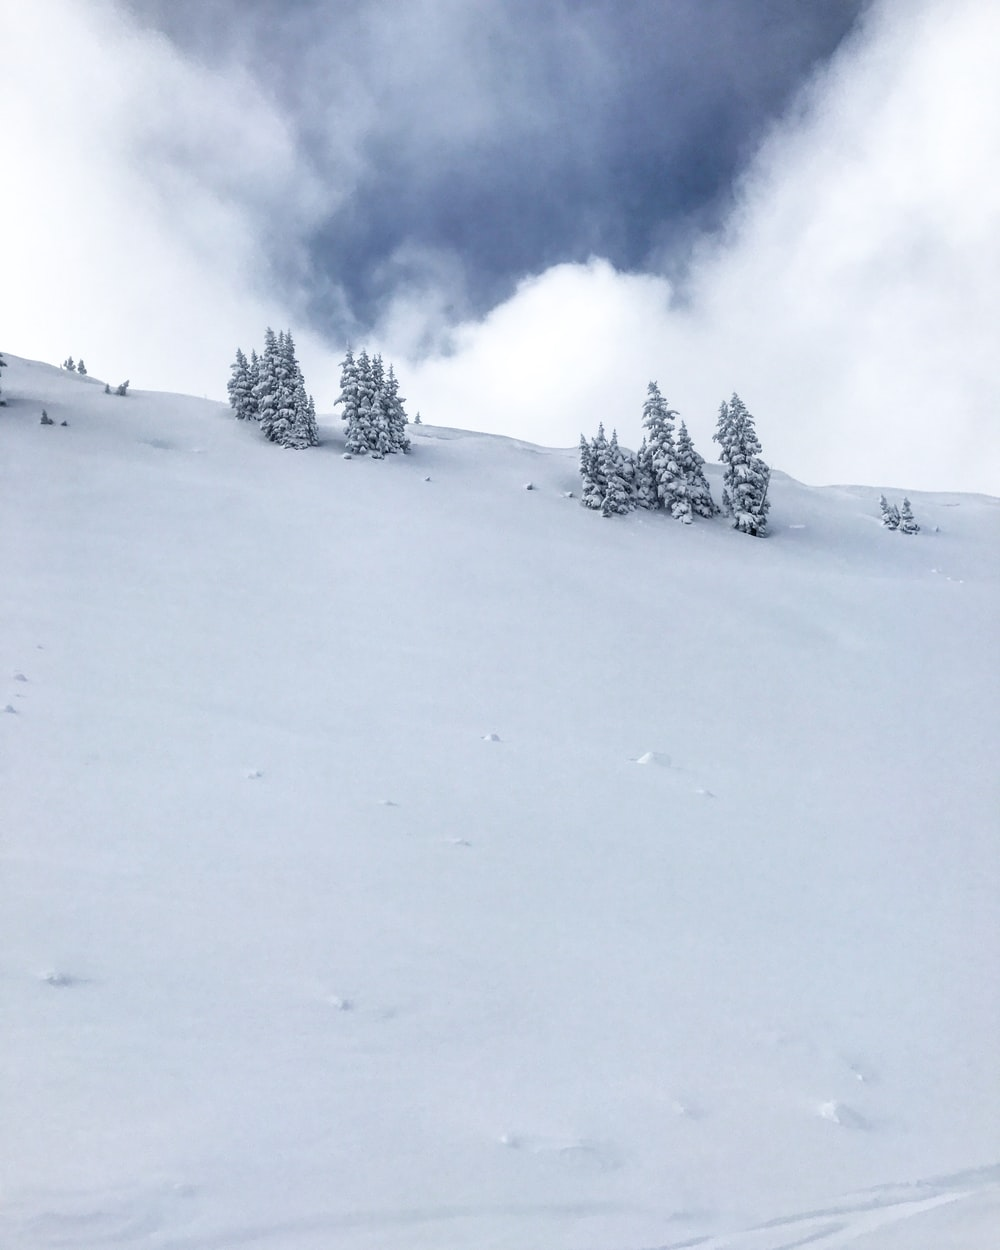 photo of mountain covered by snow under cloudy sky